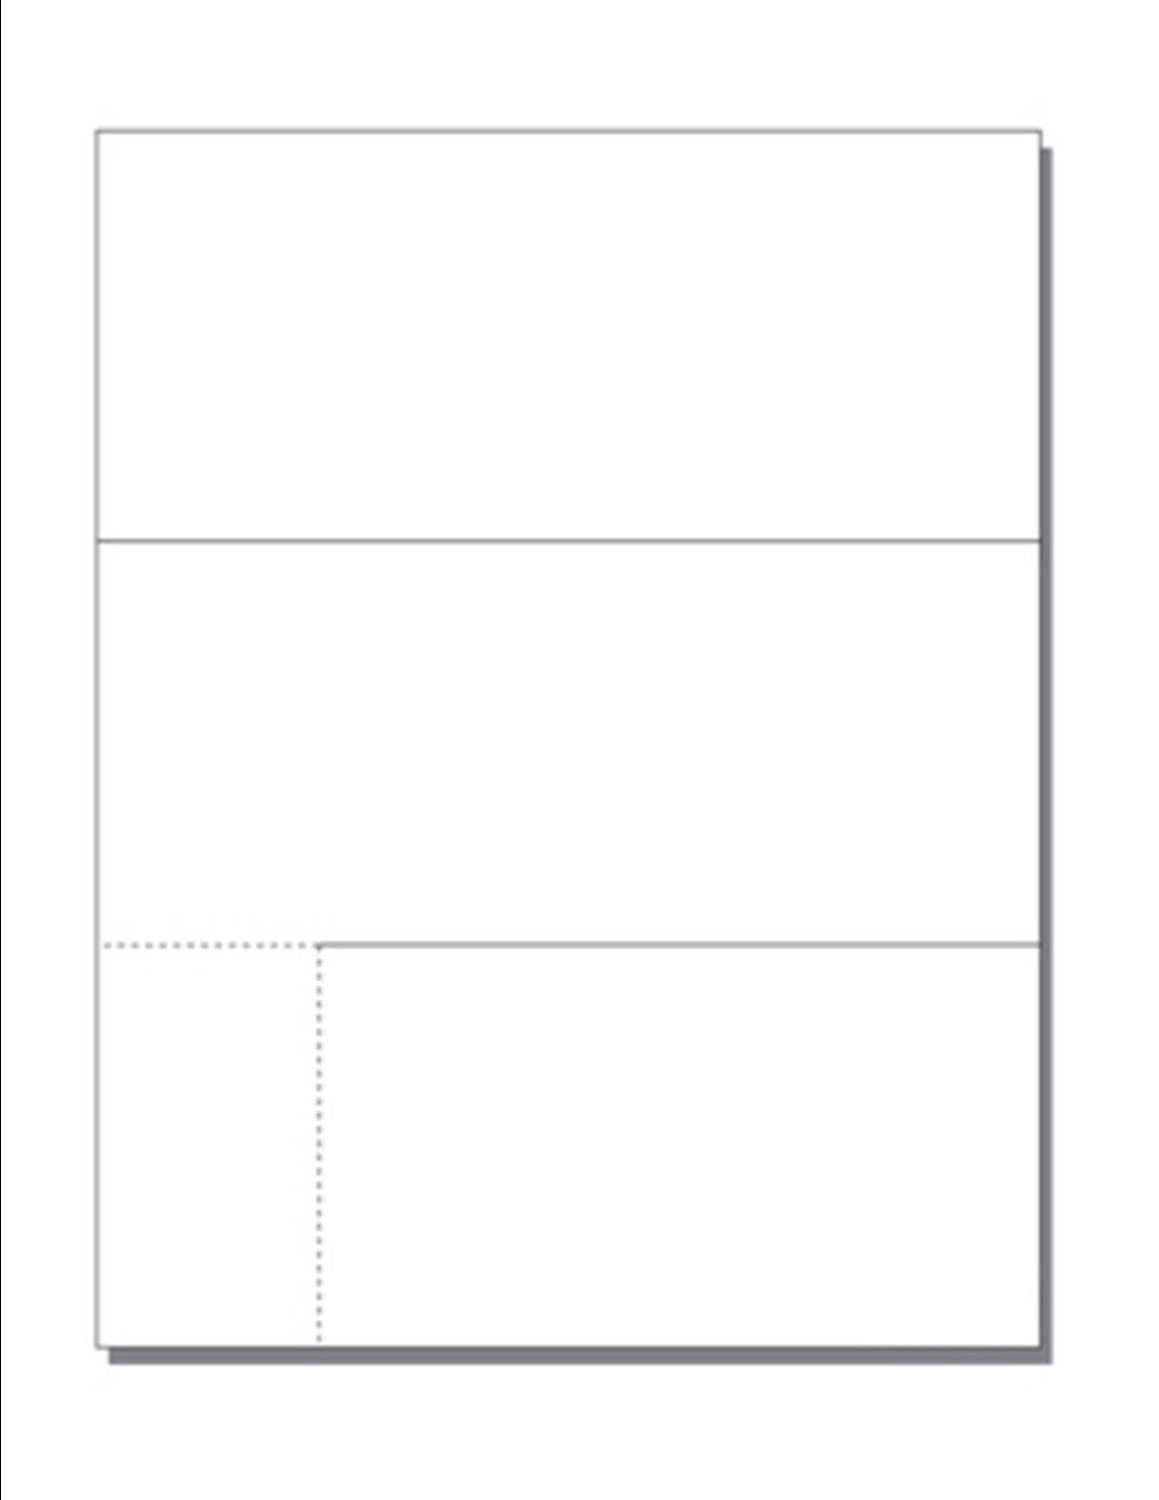 """Print-Ready Tri-Fold Mailer (3-2/3"""" x 8-1/2"""", Folded) with Die-Cut Business Card (2"""" x 3-5/8""""), on 8-1/2"""" x 11"""" White 67lb Vellum Paper - 250 Sheets (Mailers)"""